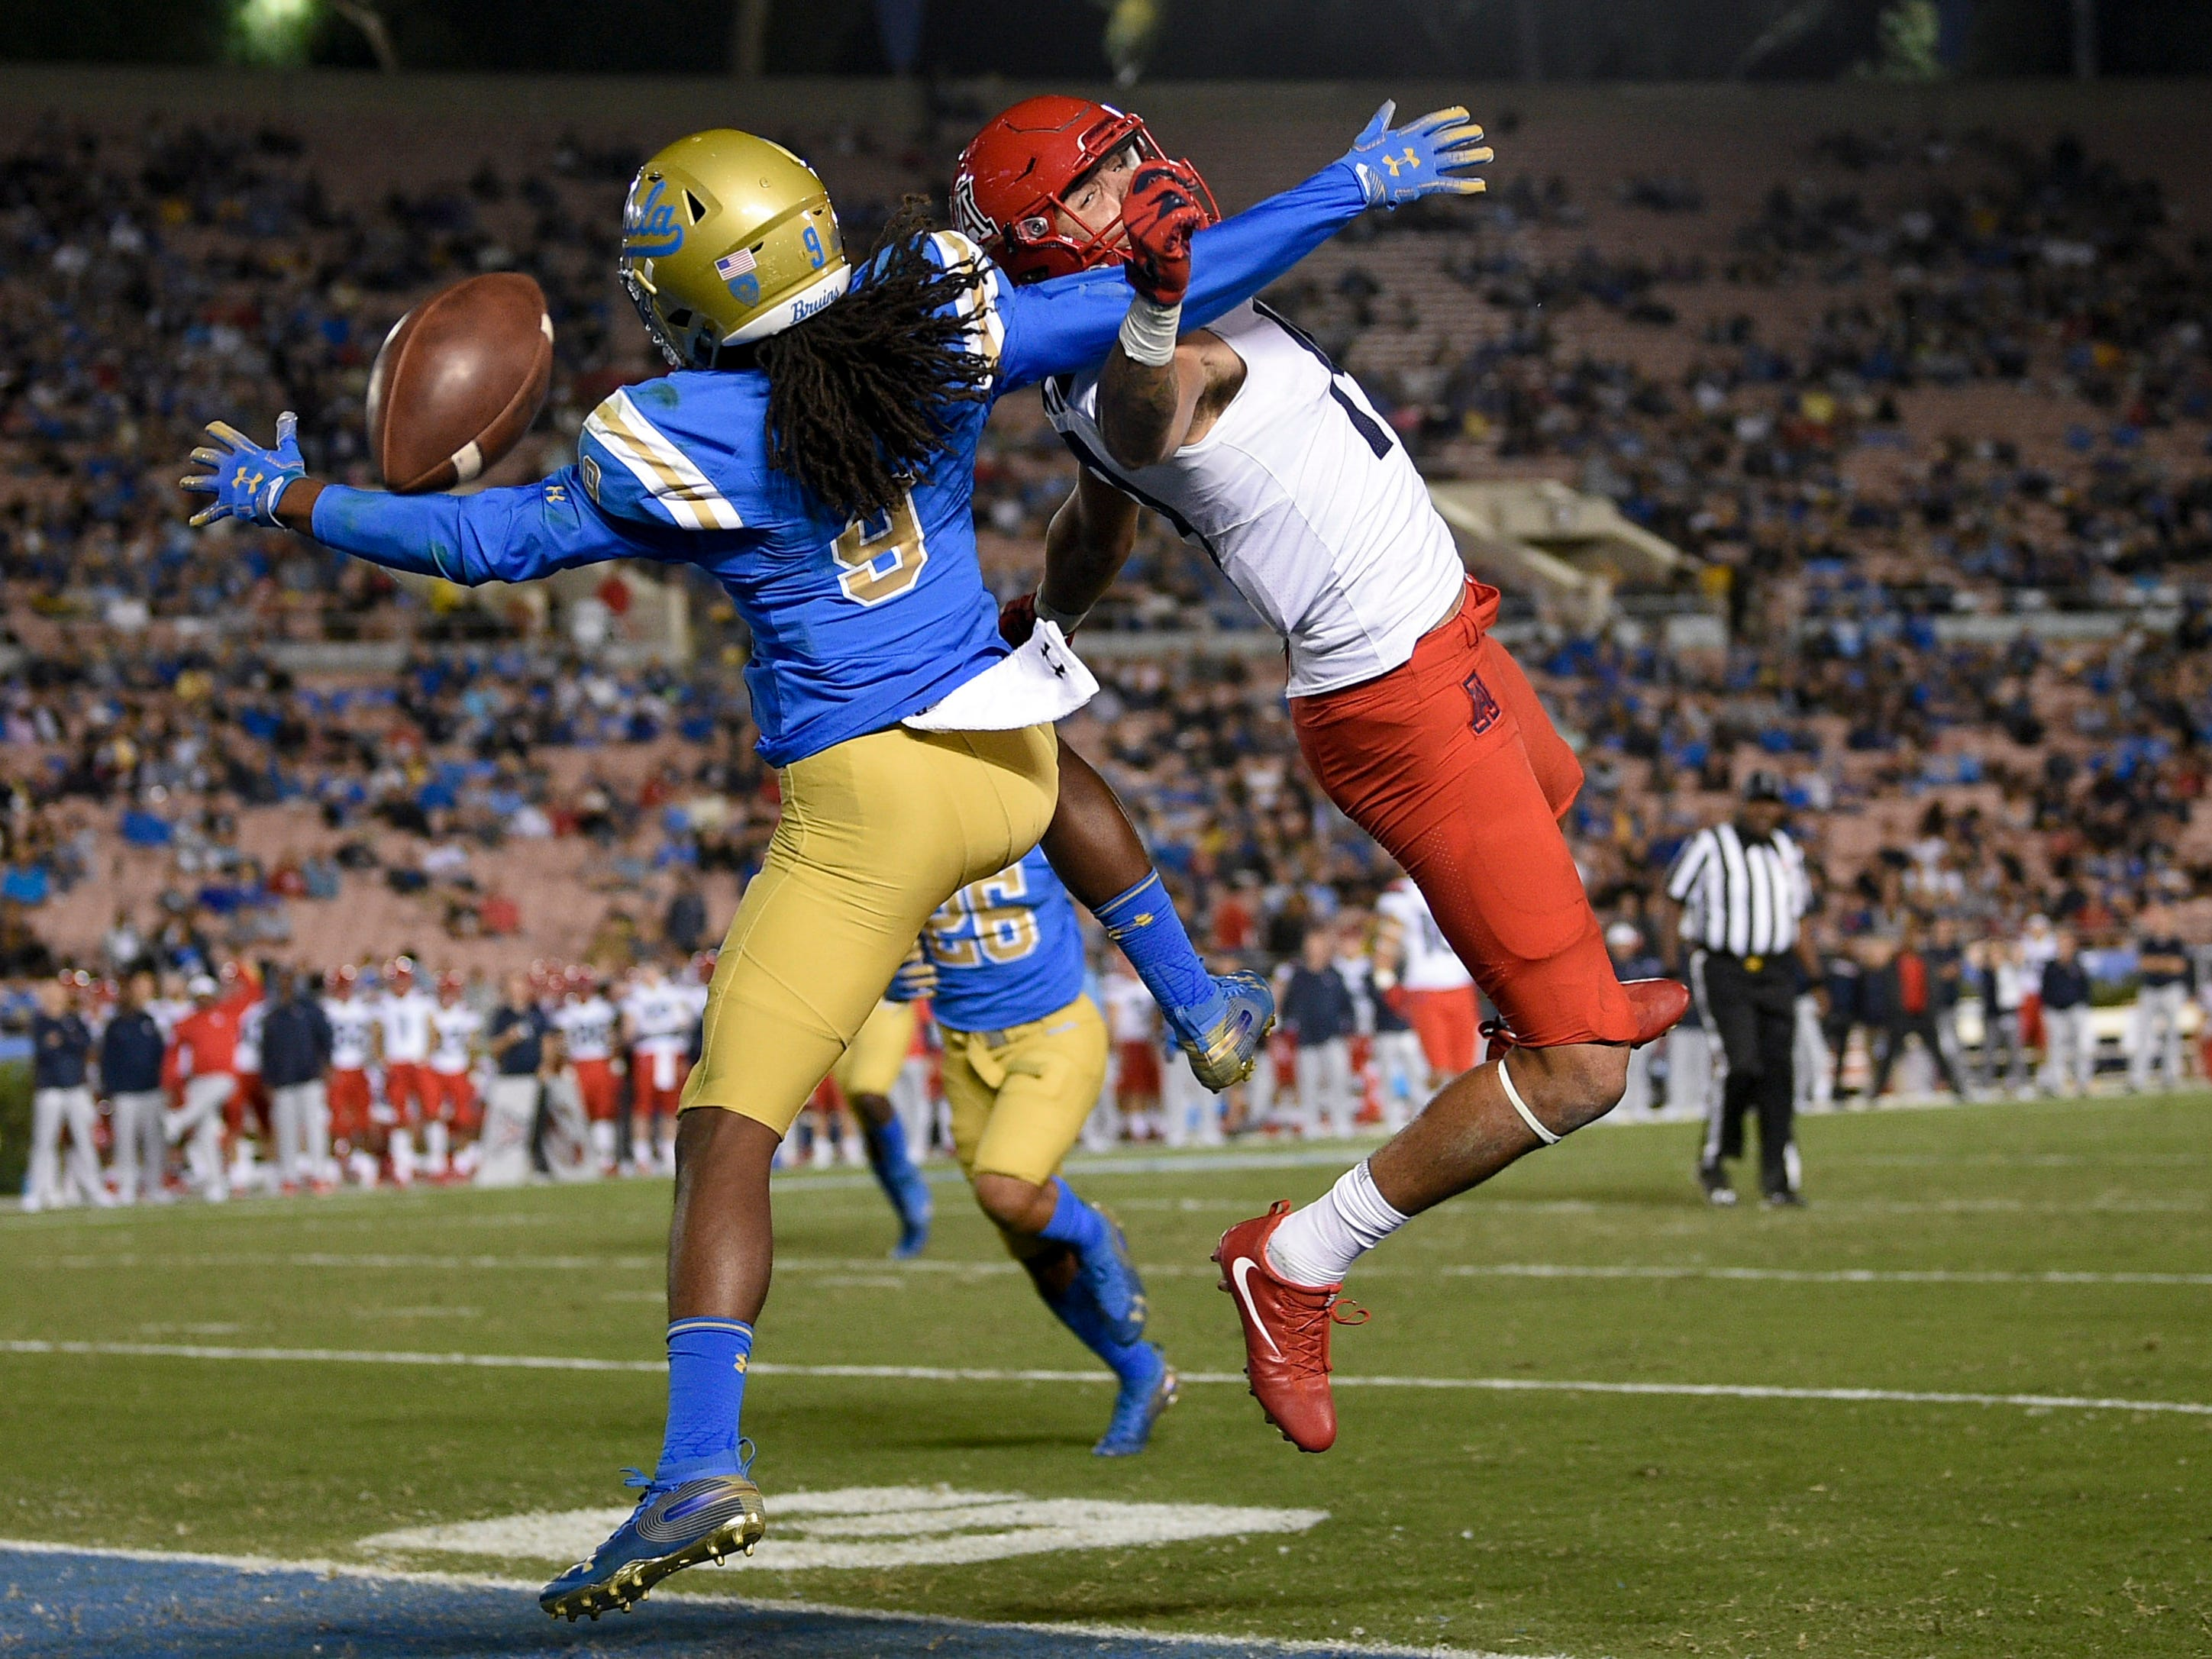 Oct 20, 2018; Pasadena, CA, USA; Arizona Wildcats wide receiver Shawn Poindexter (19) is unable to catch a pass defended by UCLA Bruins defensive back Elijah Gates (9) during the second half at Rose Bowl. Mandatory Credit: Kelvin Kuo-USA TODAY Sports